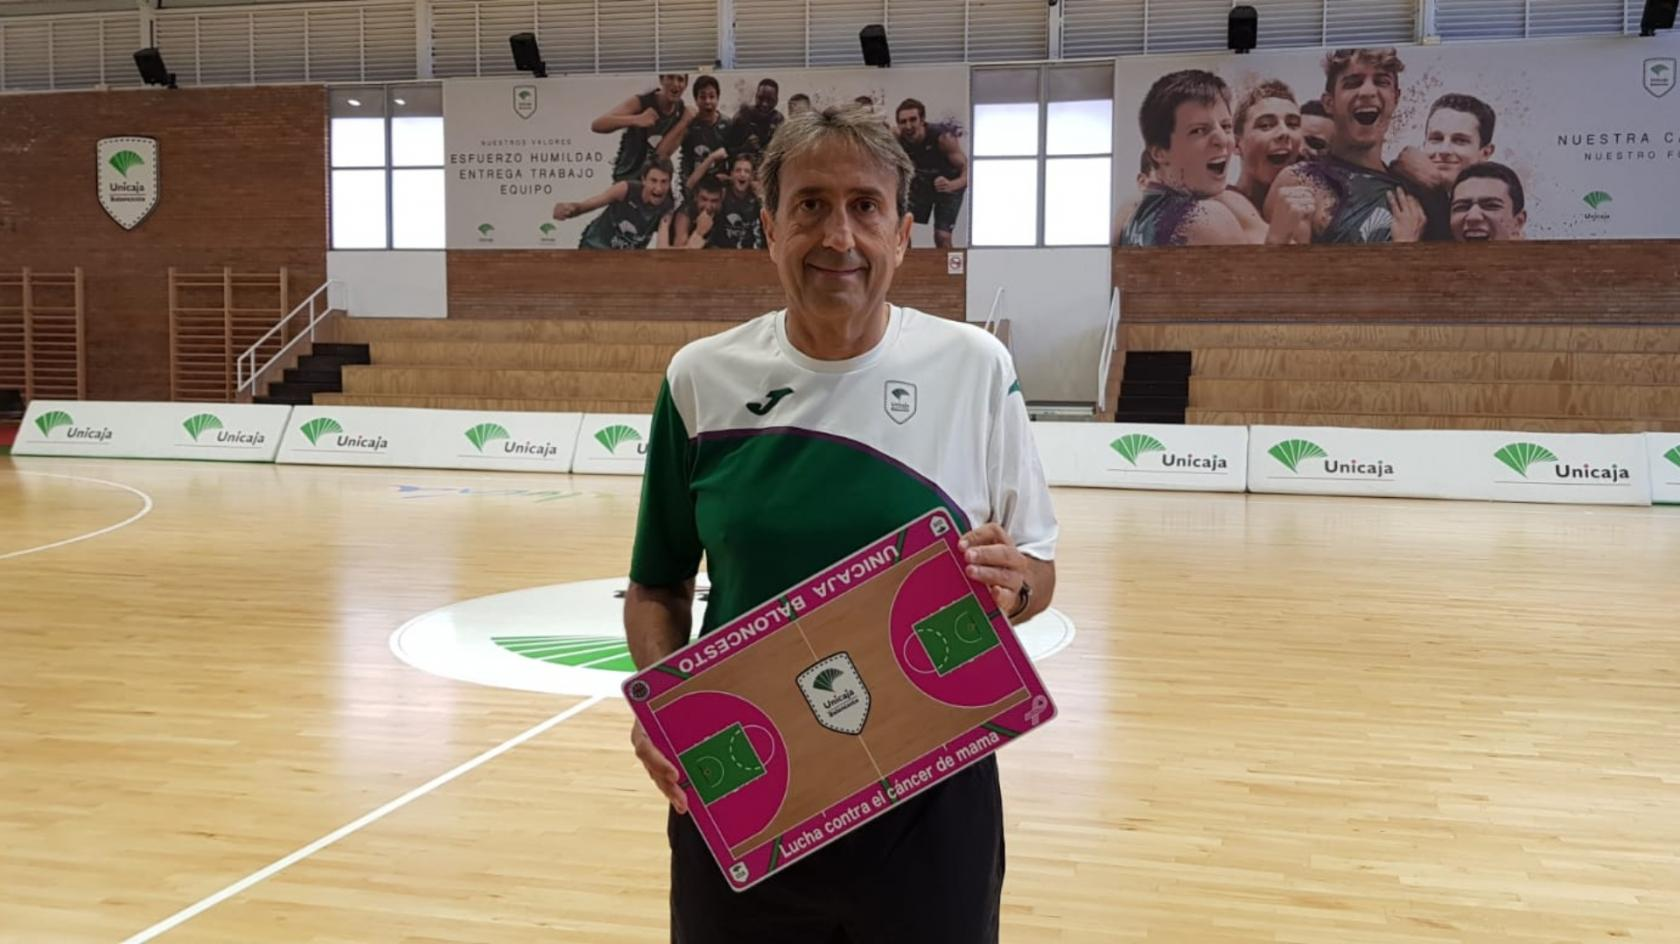 The Liga Endesa join the #ContigoDamosLaCara campaign in the fight against breast cancer